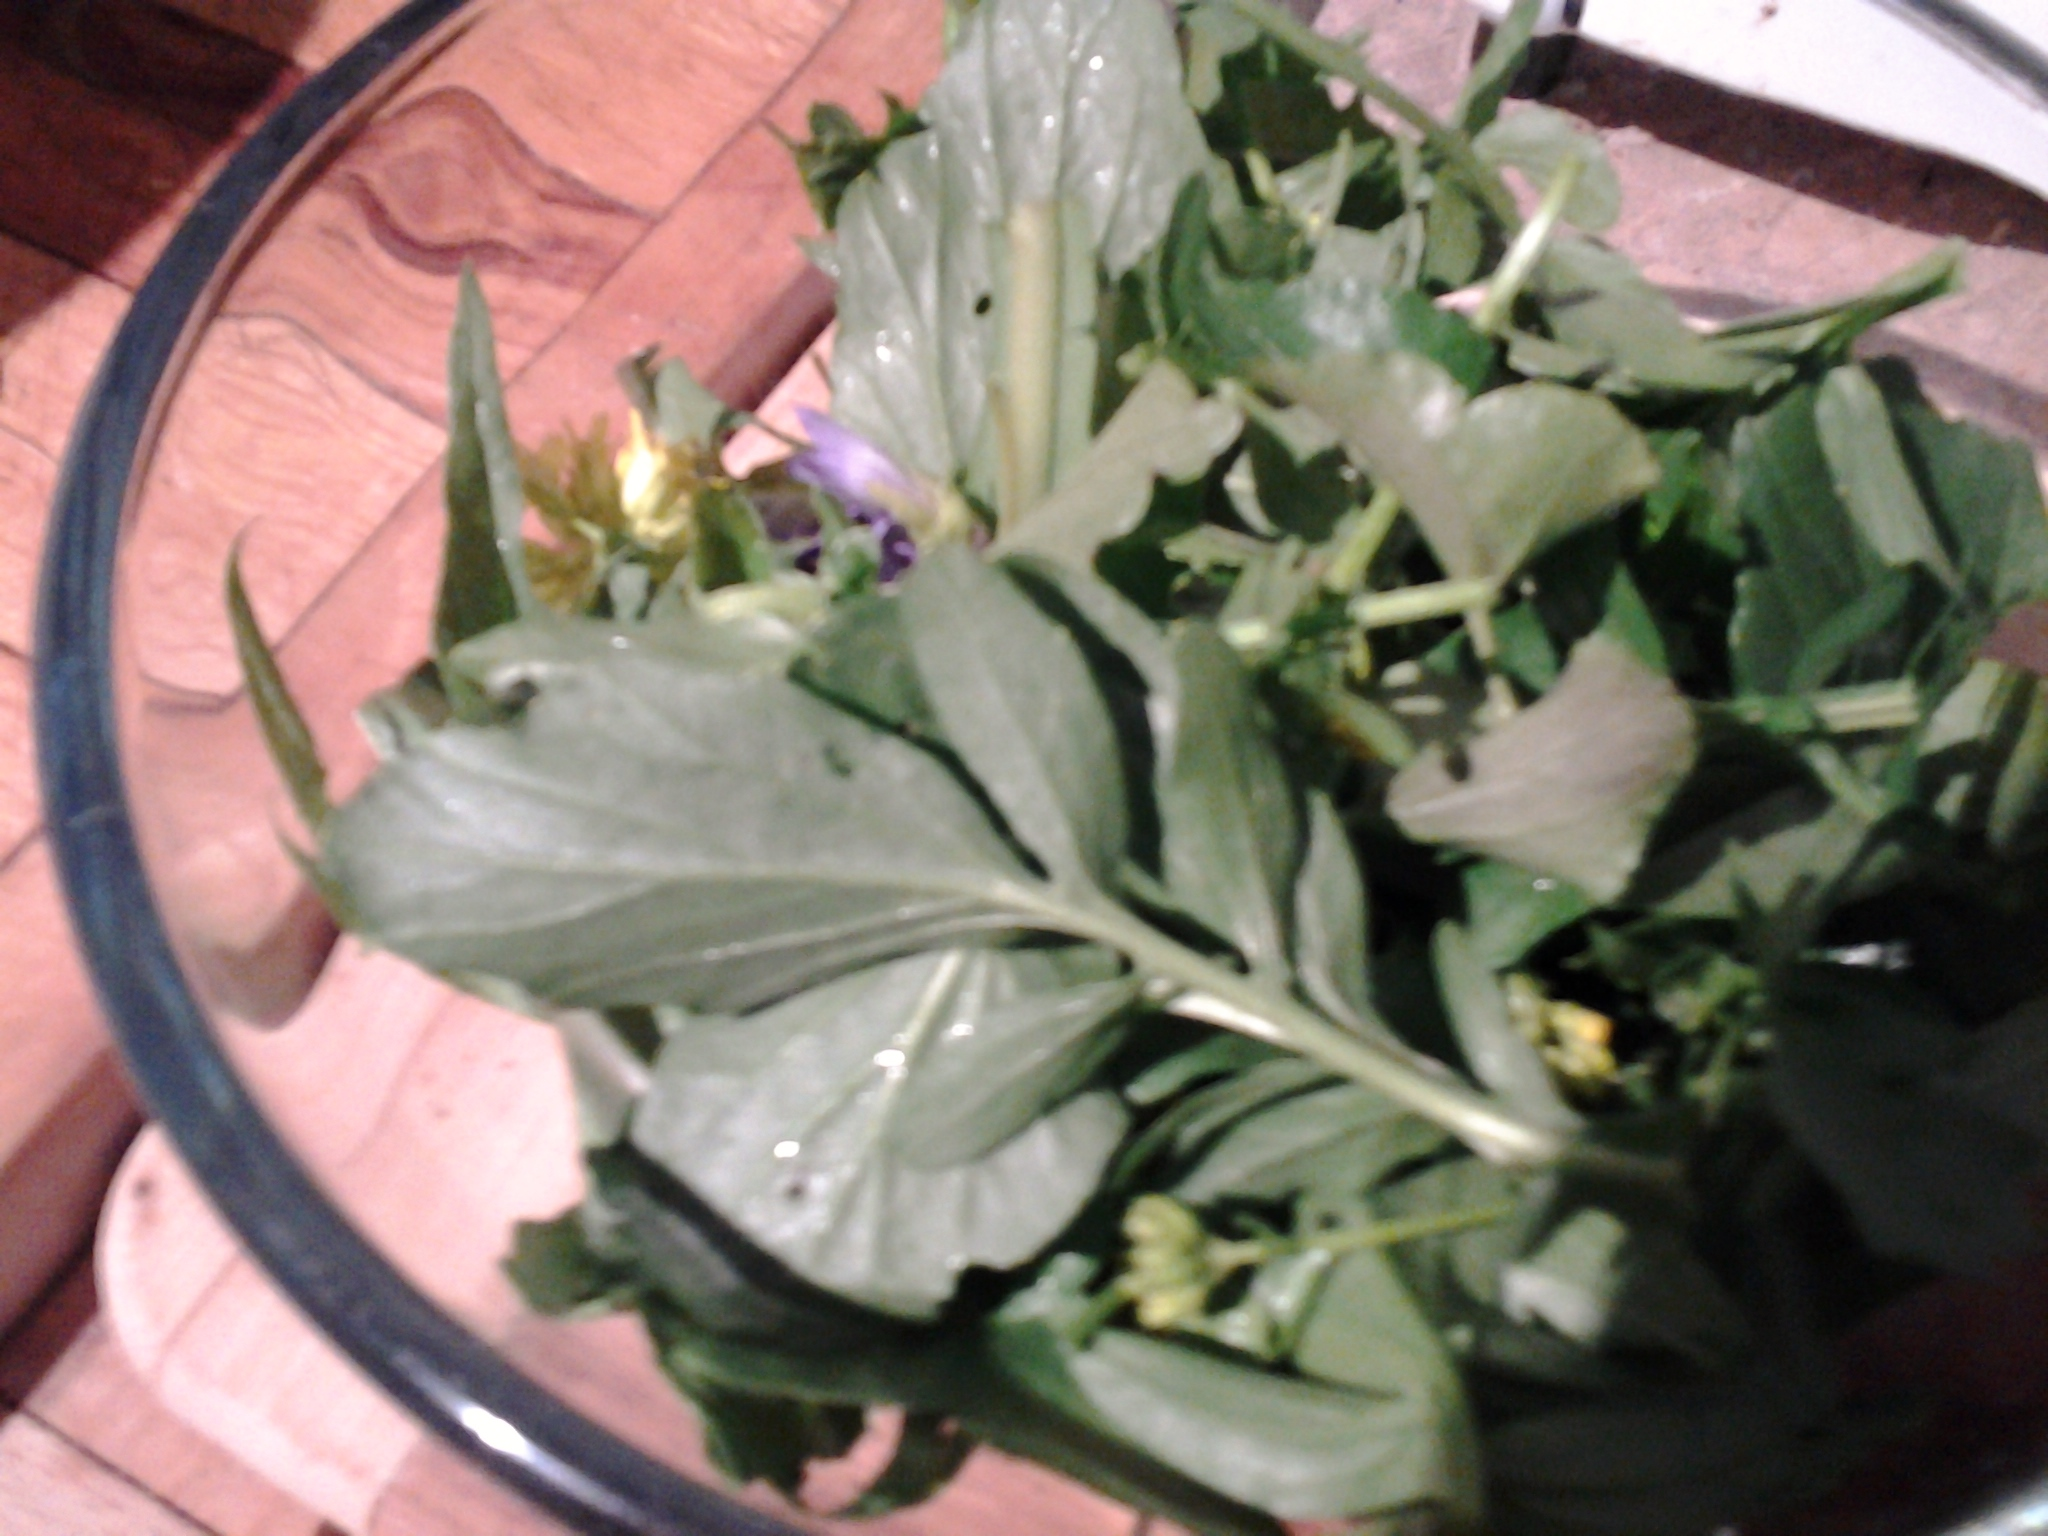 Foraging Fun: Violets, Winter Cress, and Dandelions